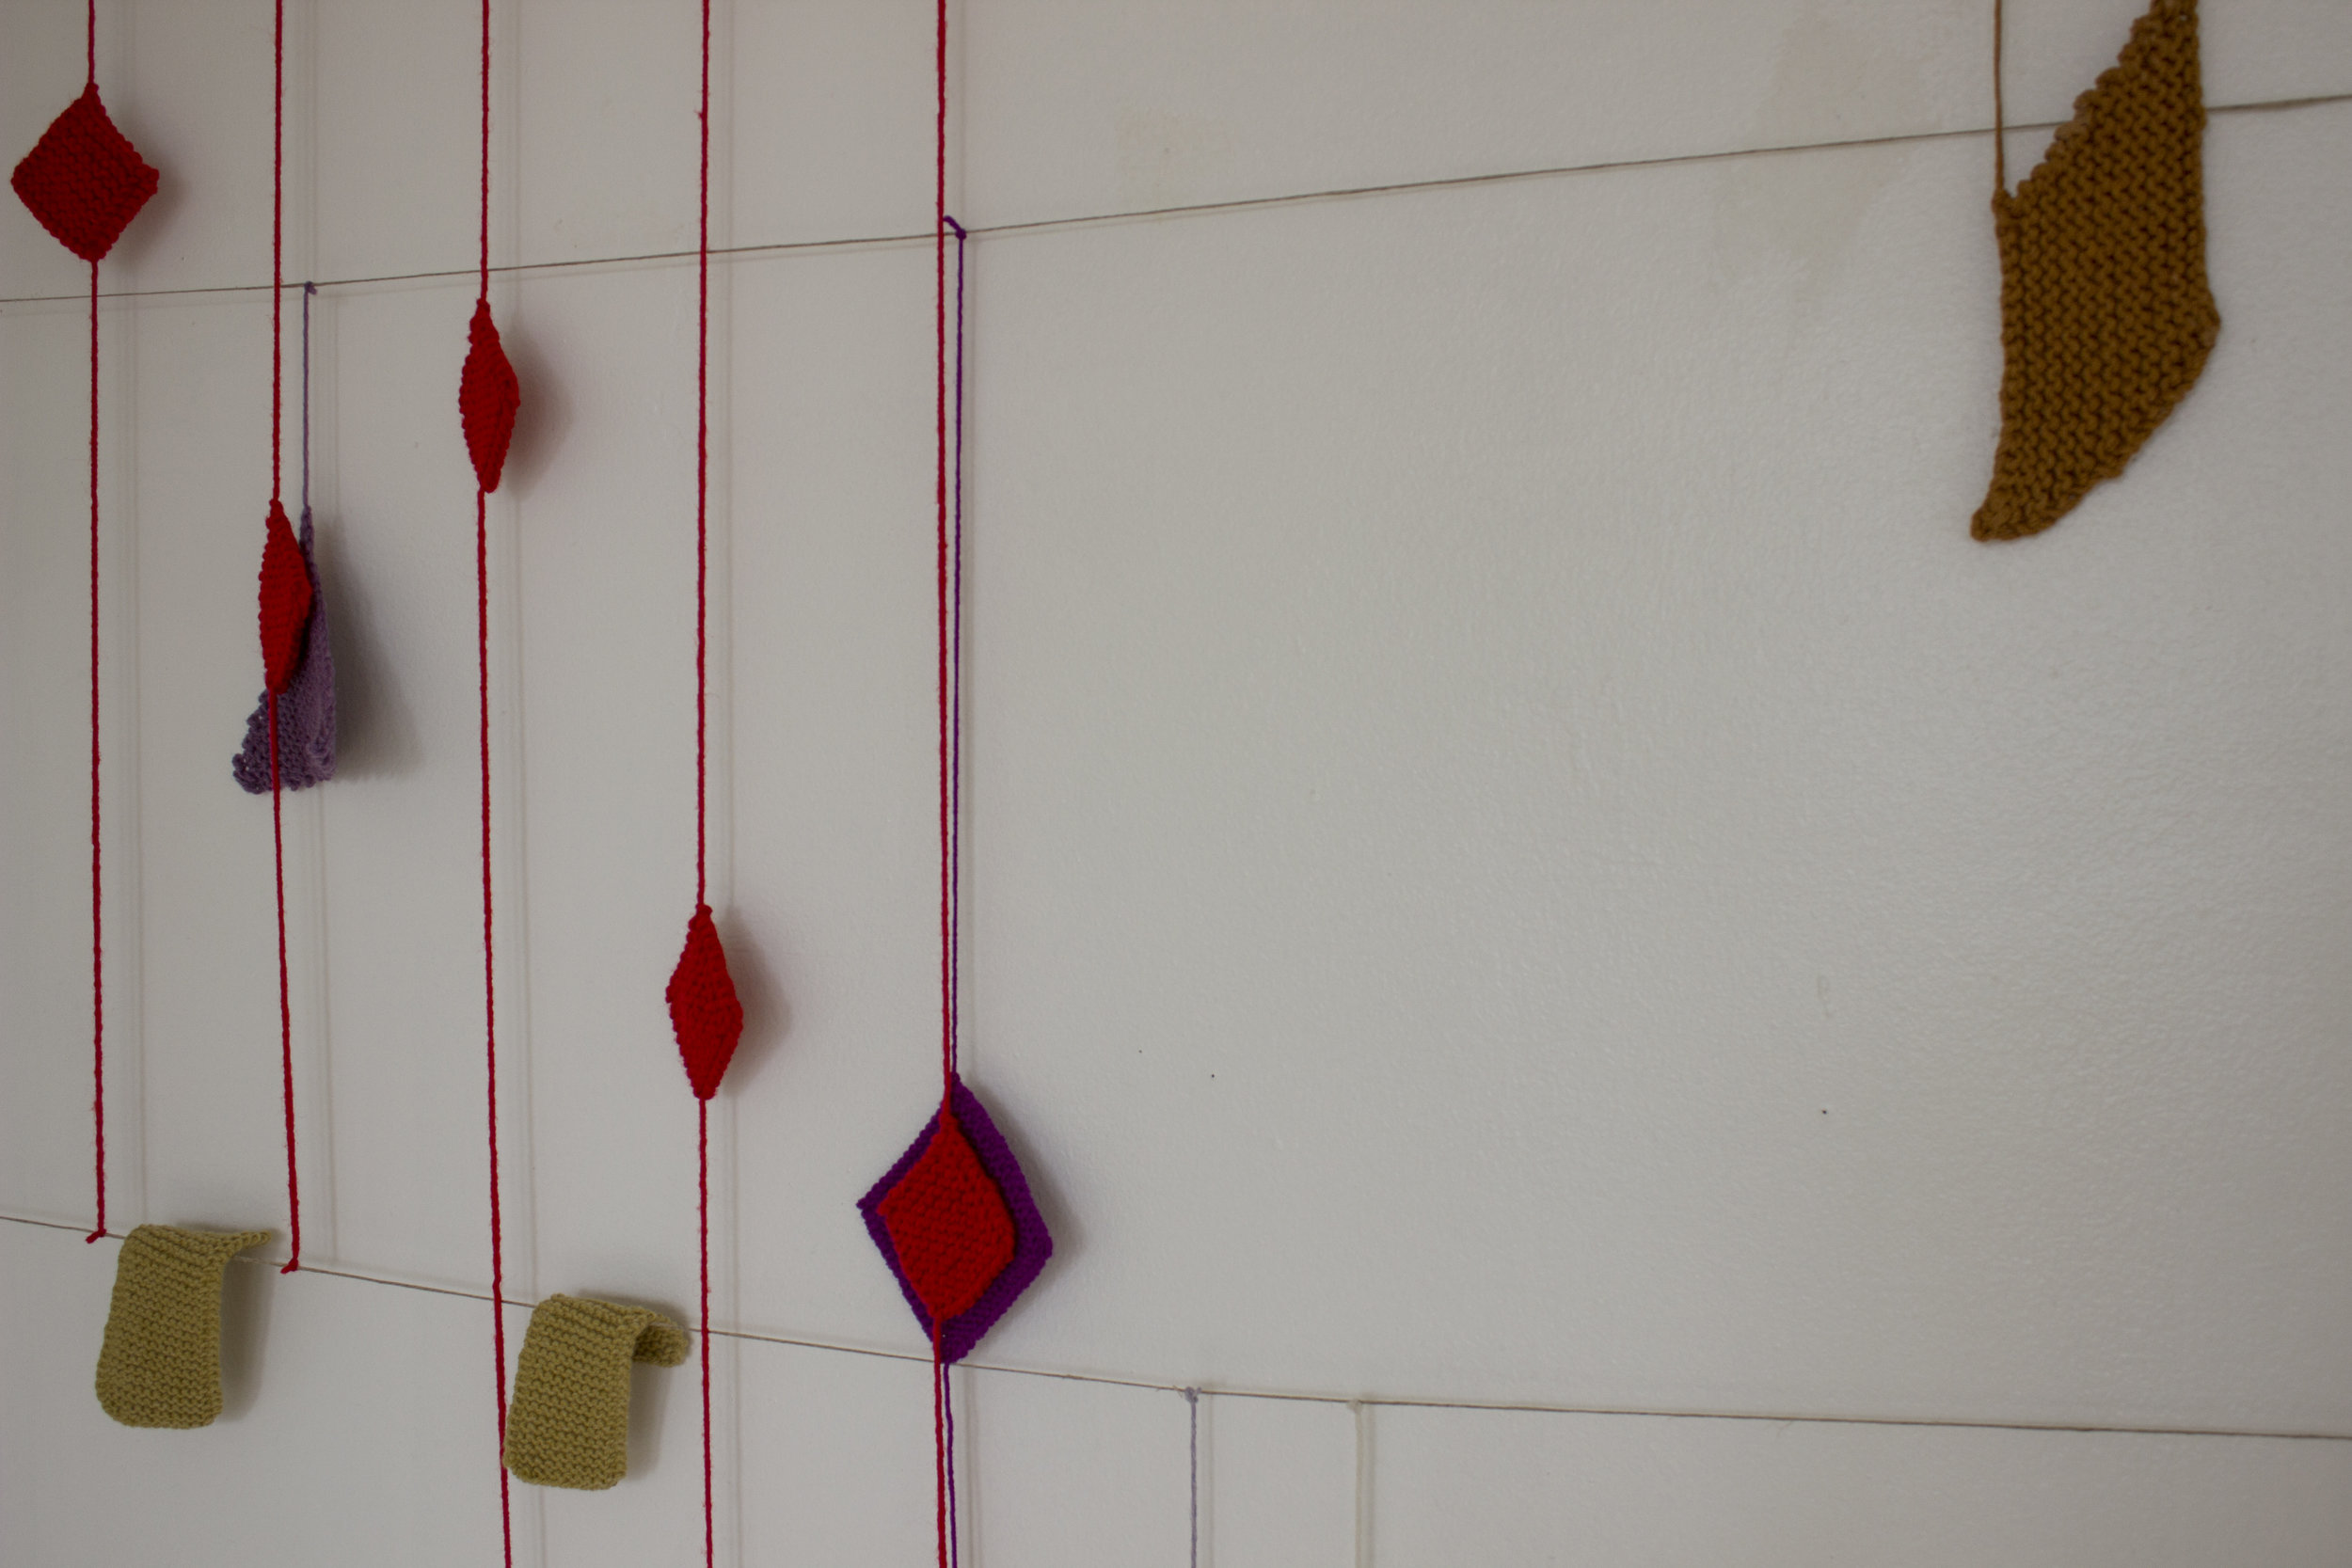 Tracie Hayes, Limited (Mapped) Revision of the Original Unbounded State, 2018, Yarn, Hemp